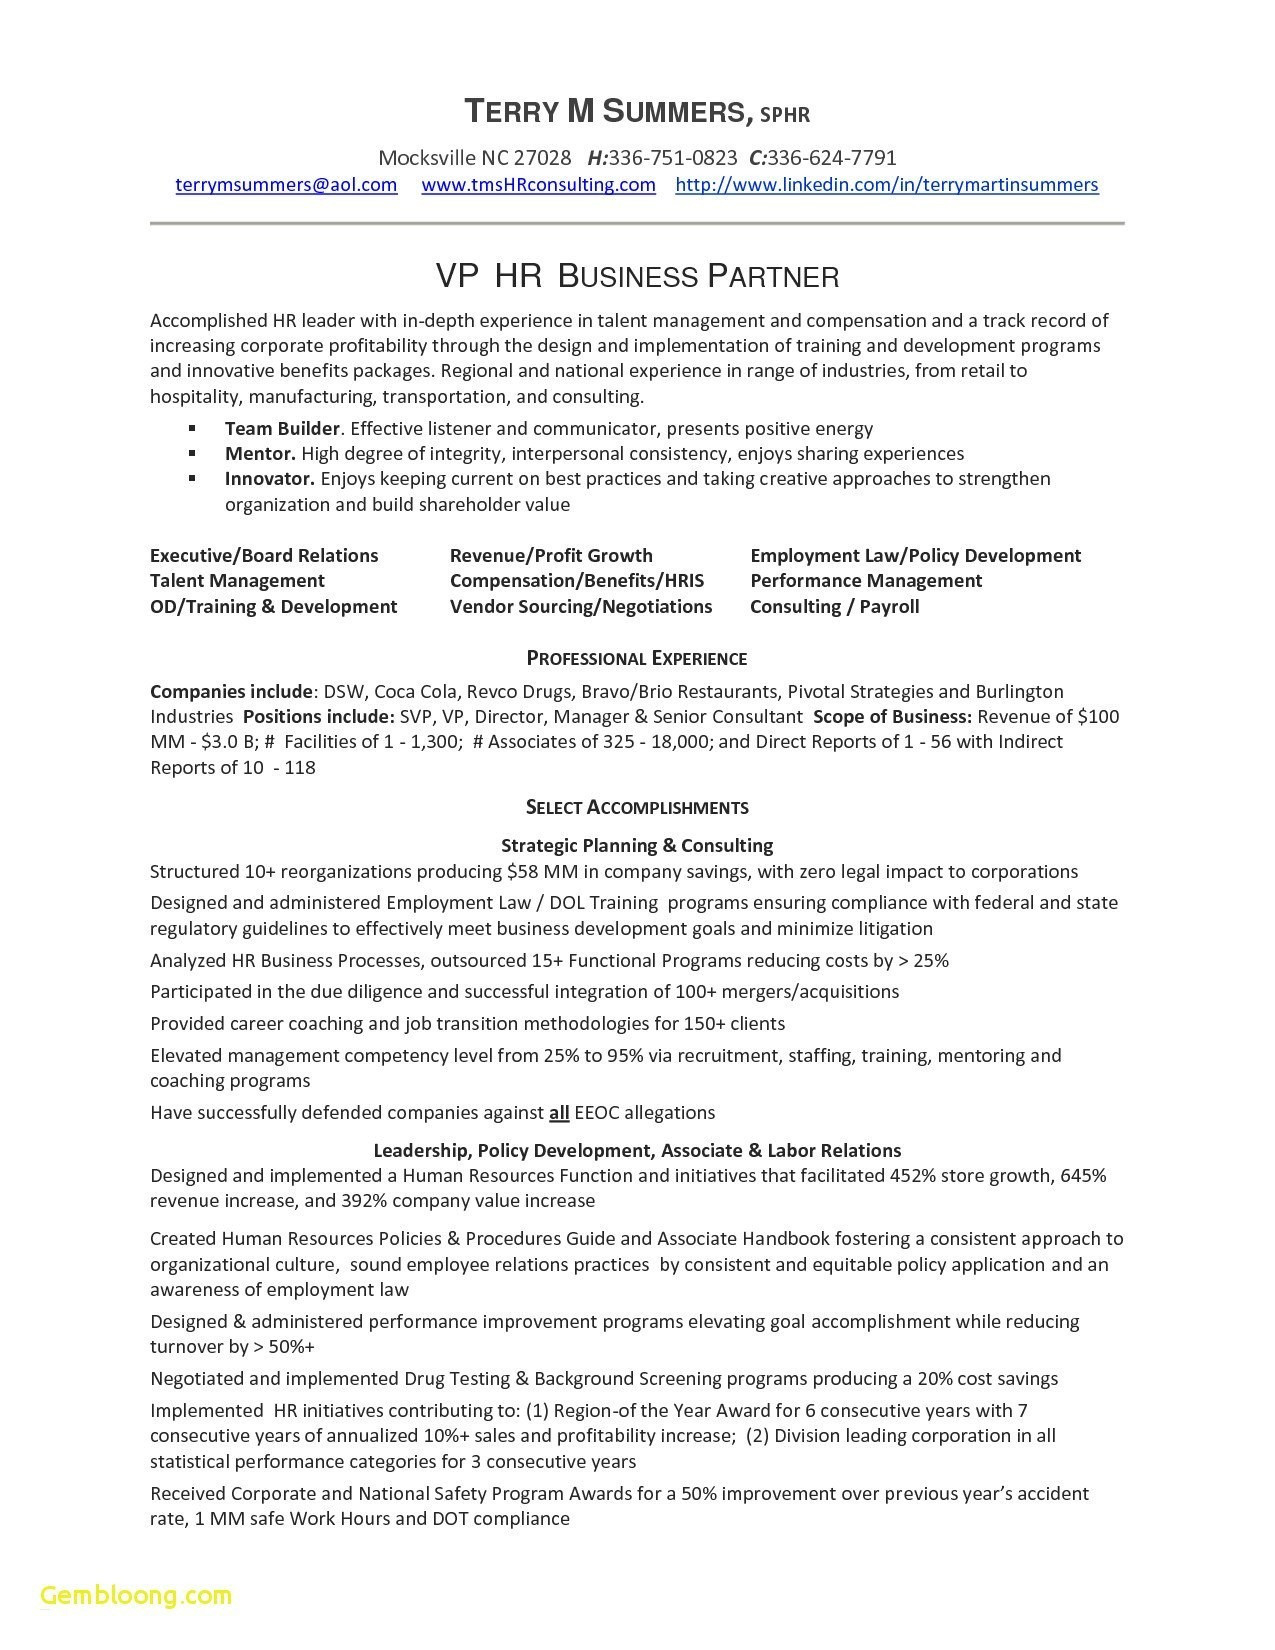 Human Resources Manager Resume Template - Resume for Human Resources Director Reference Human Resources